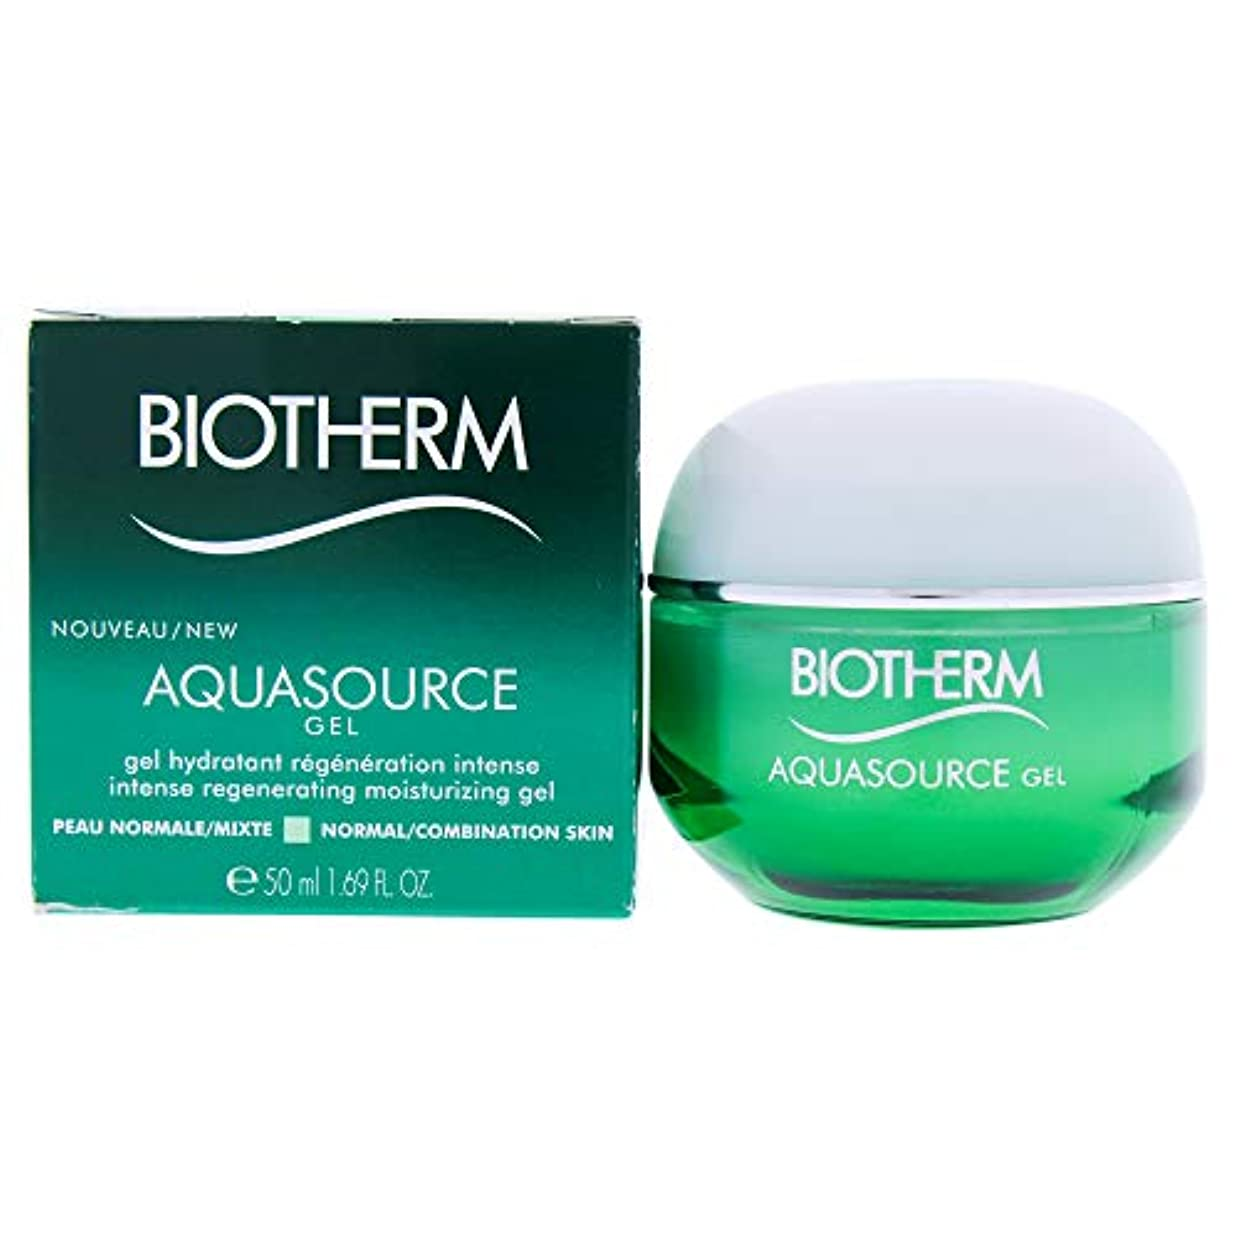 青写真満足粒子ビオテルム Aquasource Gel Intense Regenerating Moisturizing Gel - For Normal/Combination Skin 50ml/1.69oz並行輸入品